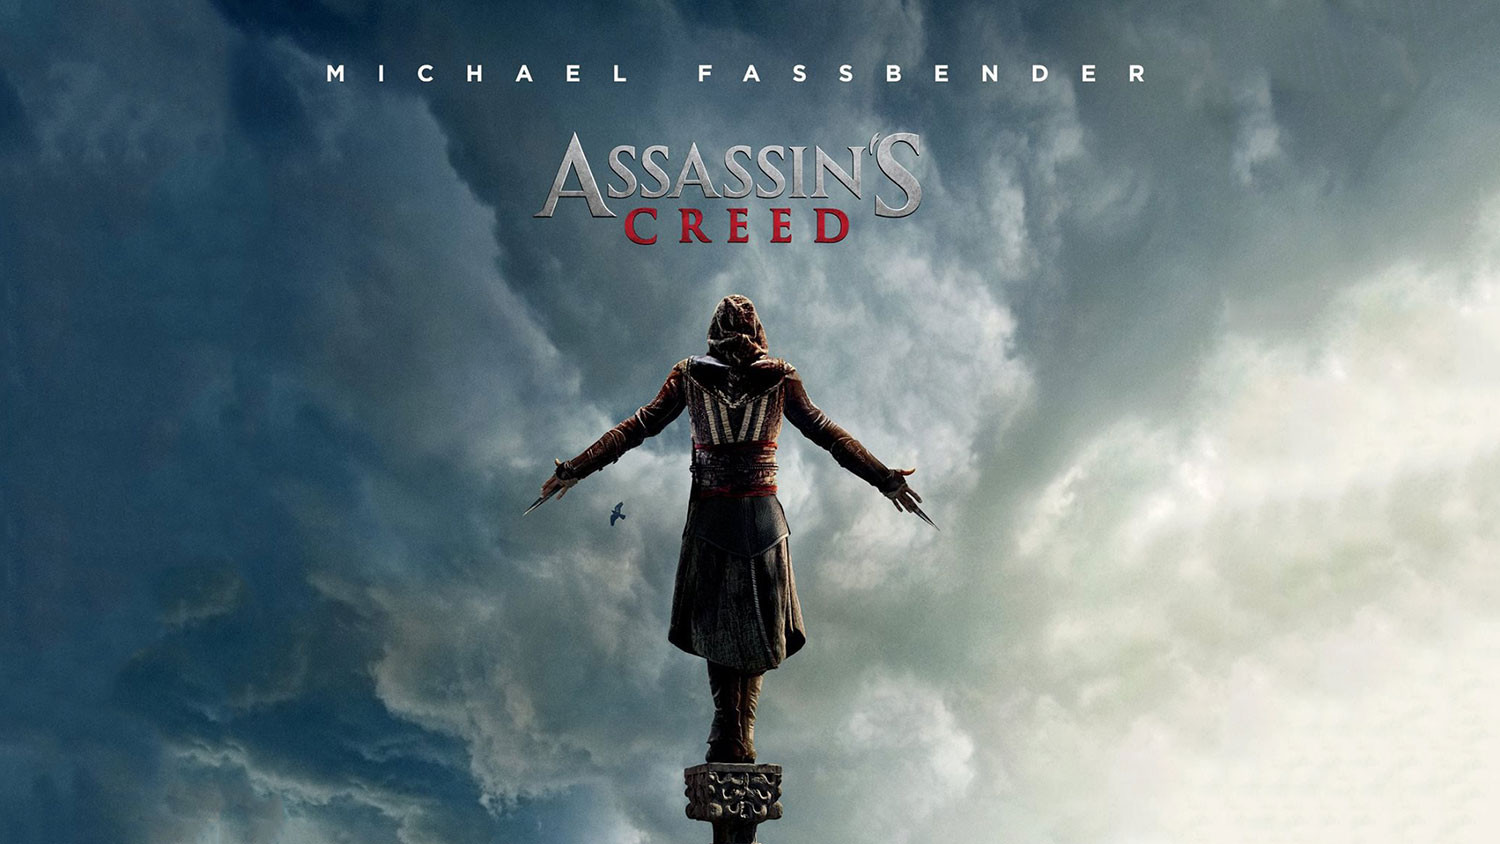 assassins-creed-movie-poster-feat-1500×844